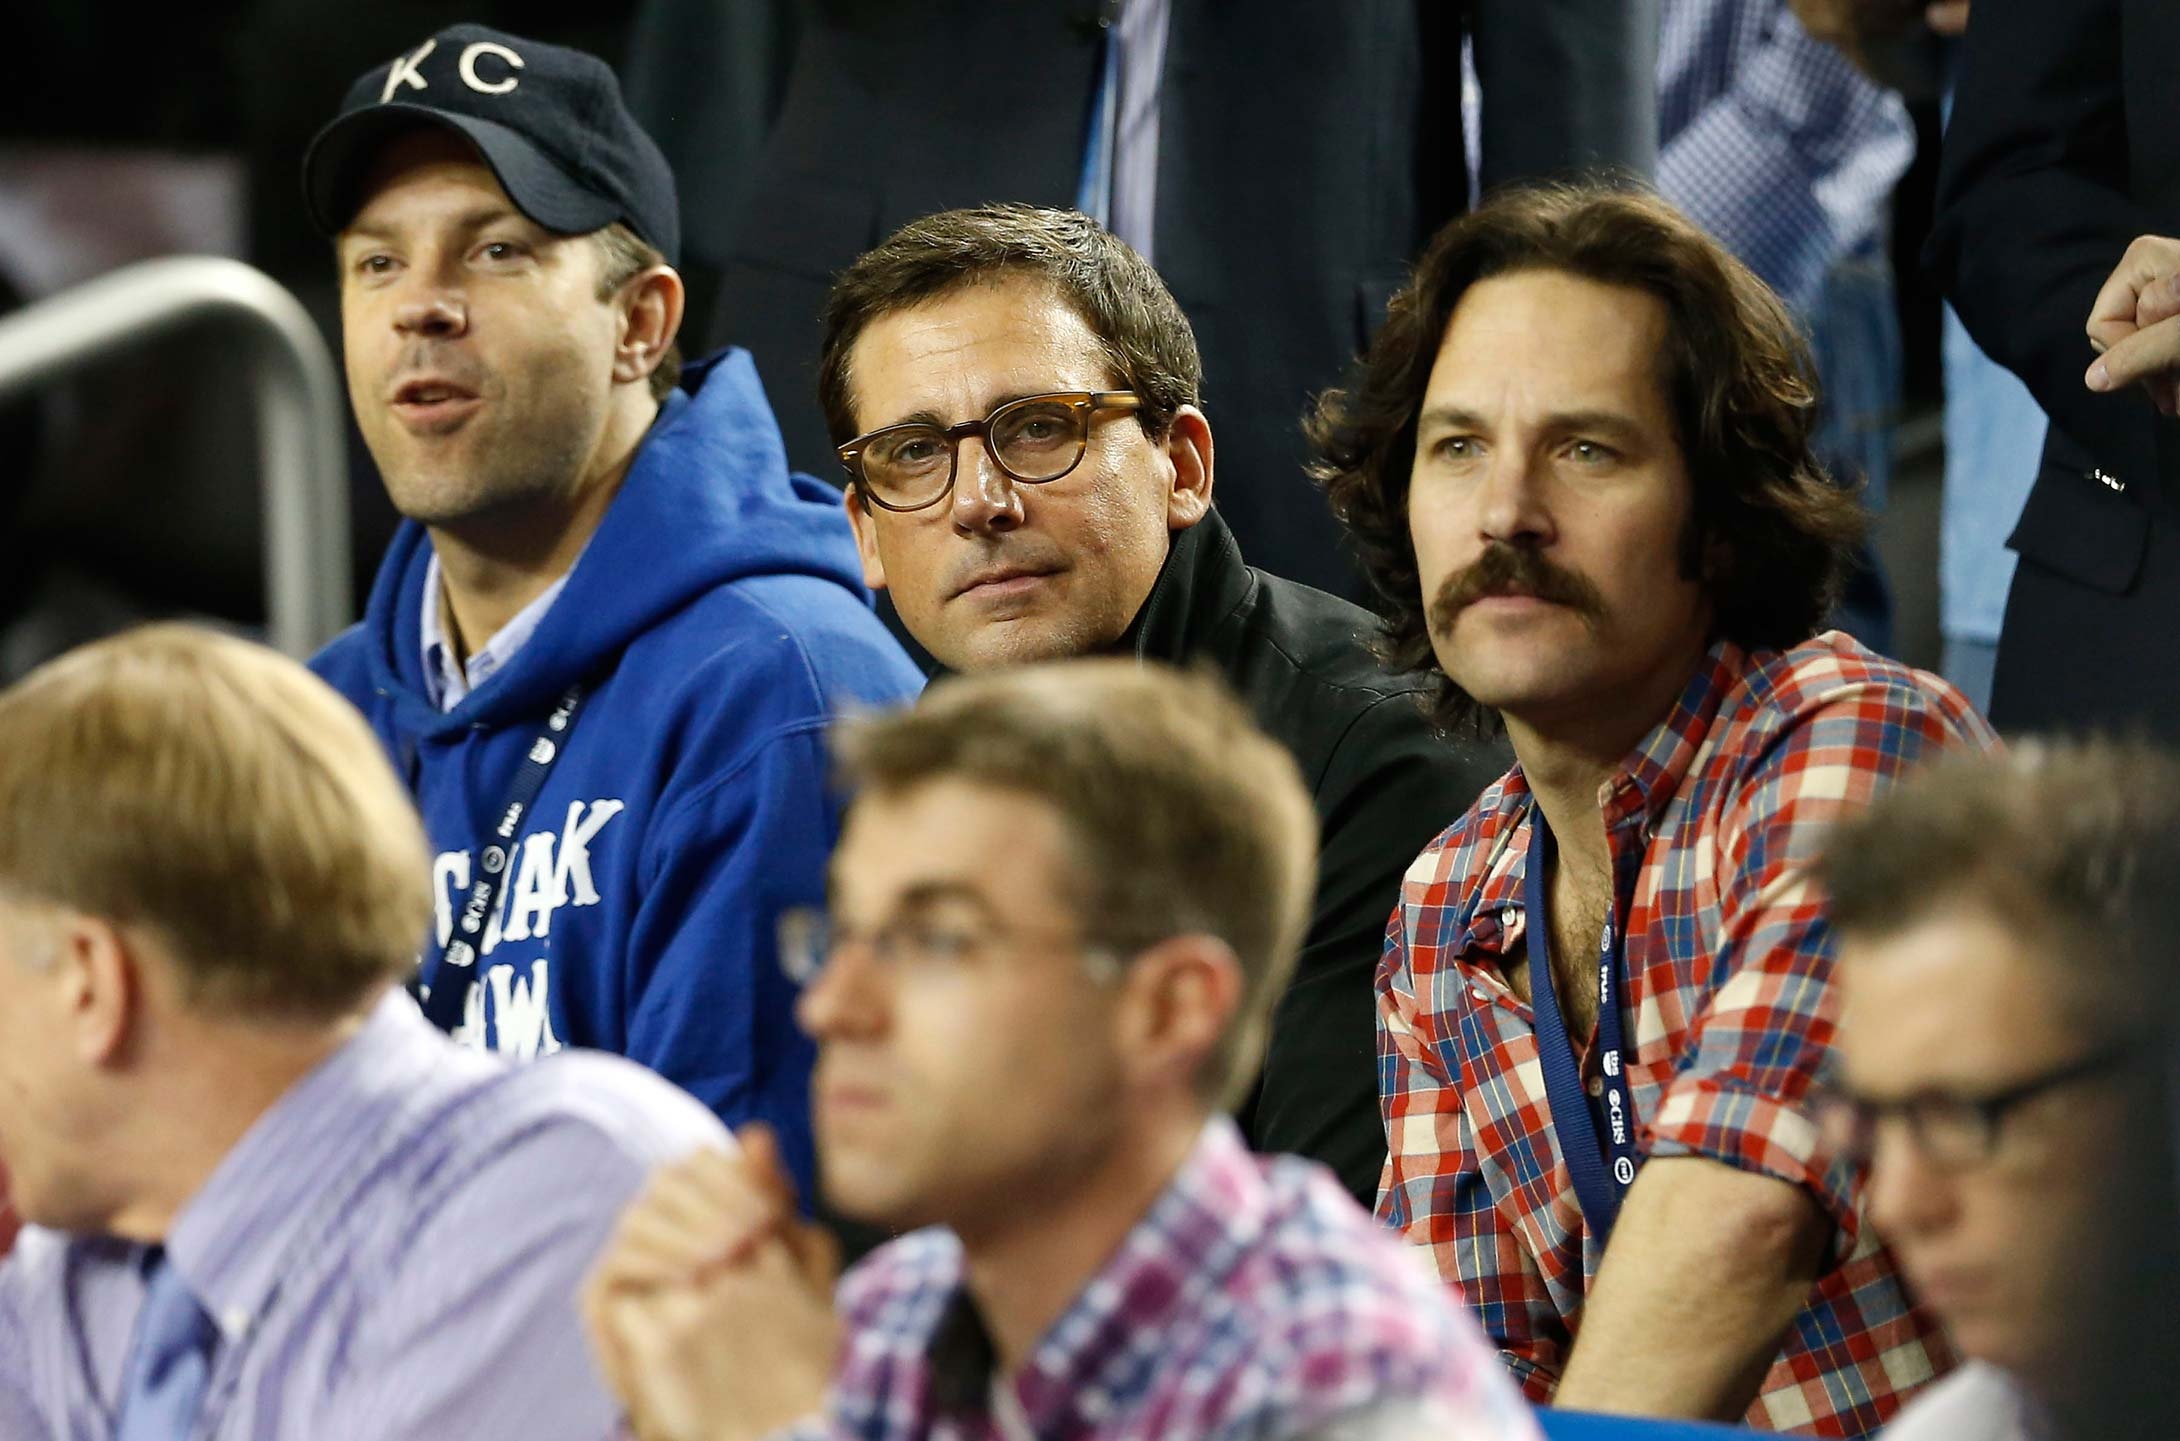 Jason Sudeikis, Steve Carell and Paul Rudd at the 2013 final between Louisville and Michigan at the Georgia Dome in Atlanta.